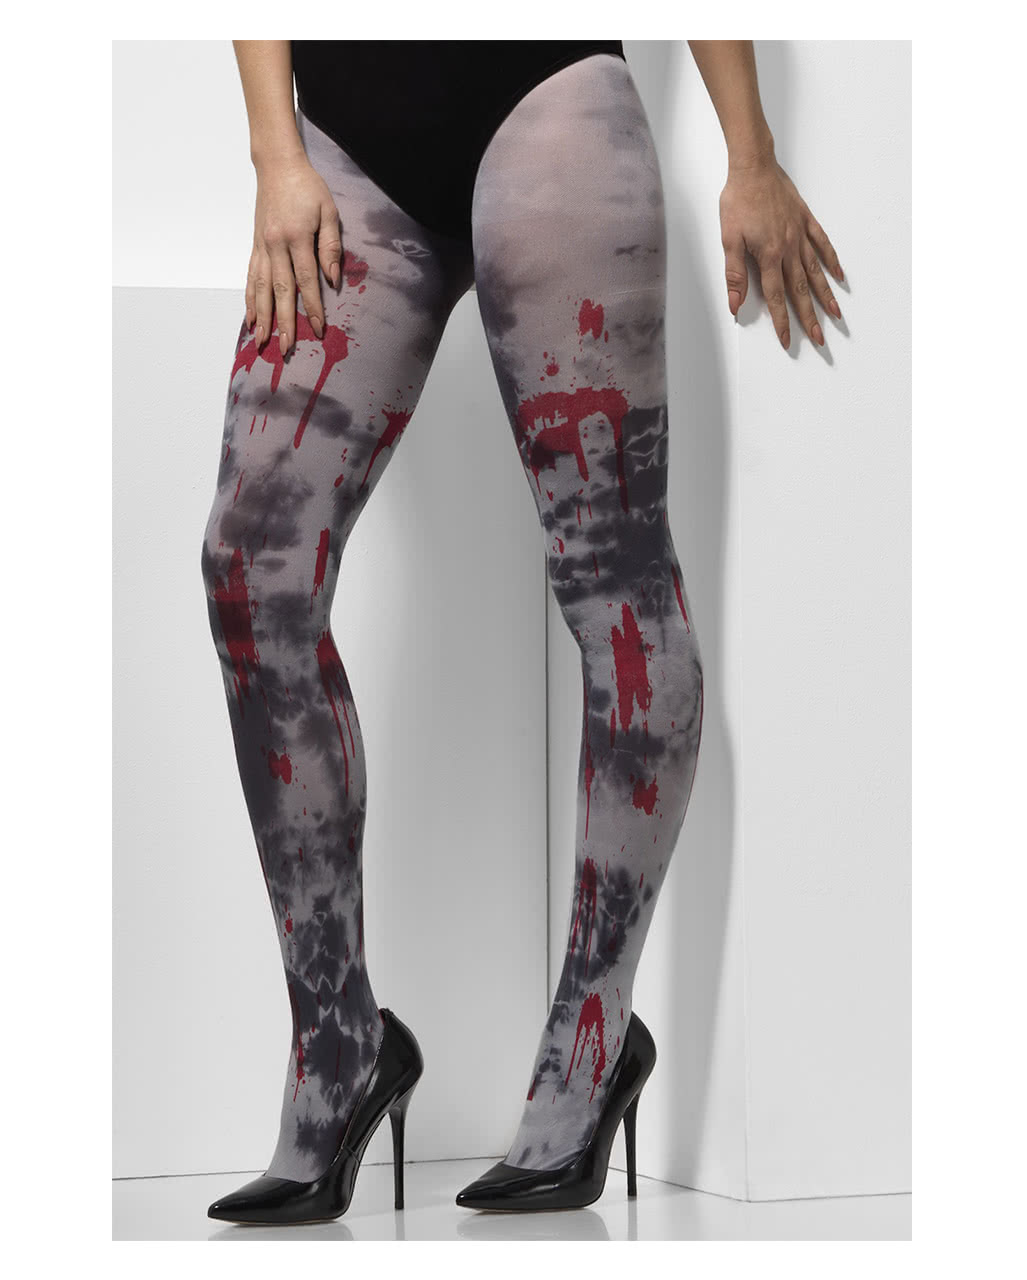 171682e5b Zombie Pantyhose With Blood For the Halloween costume